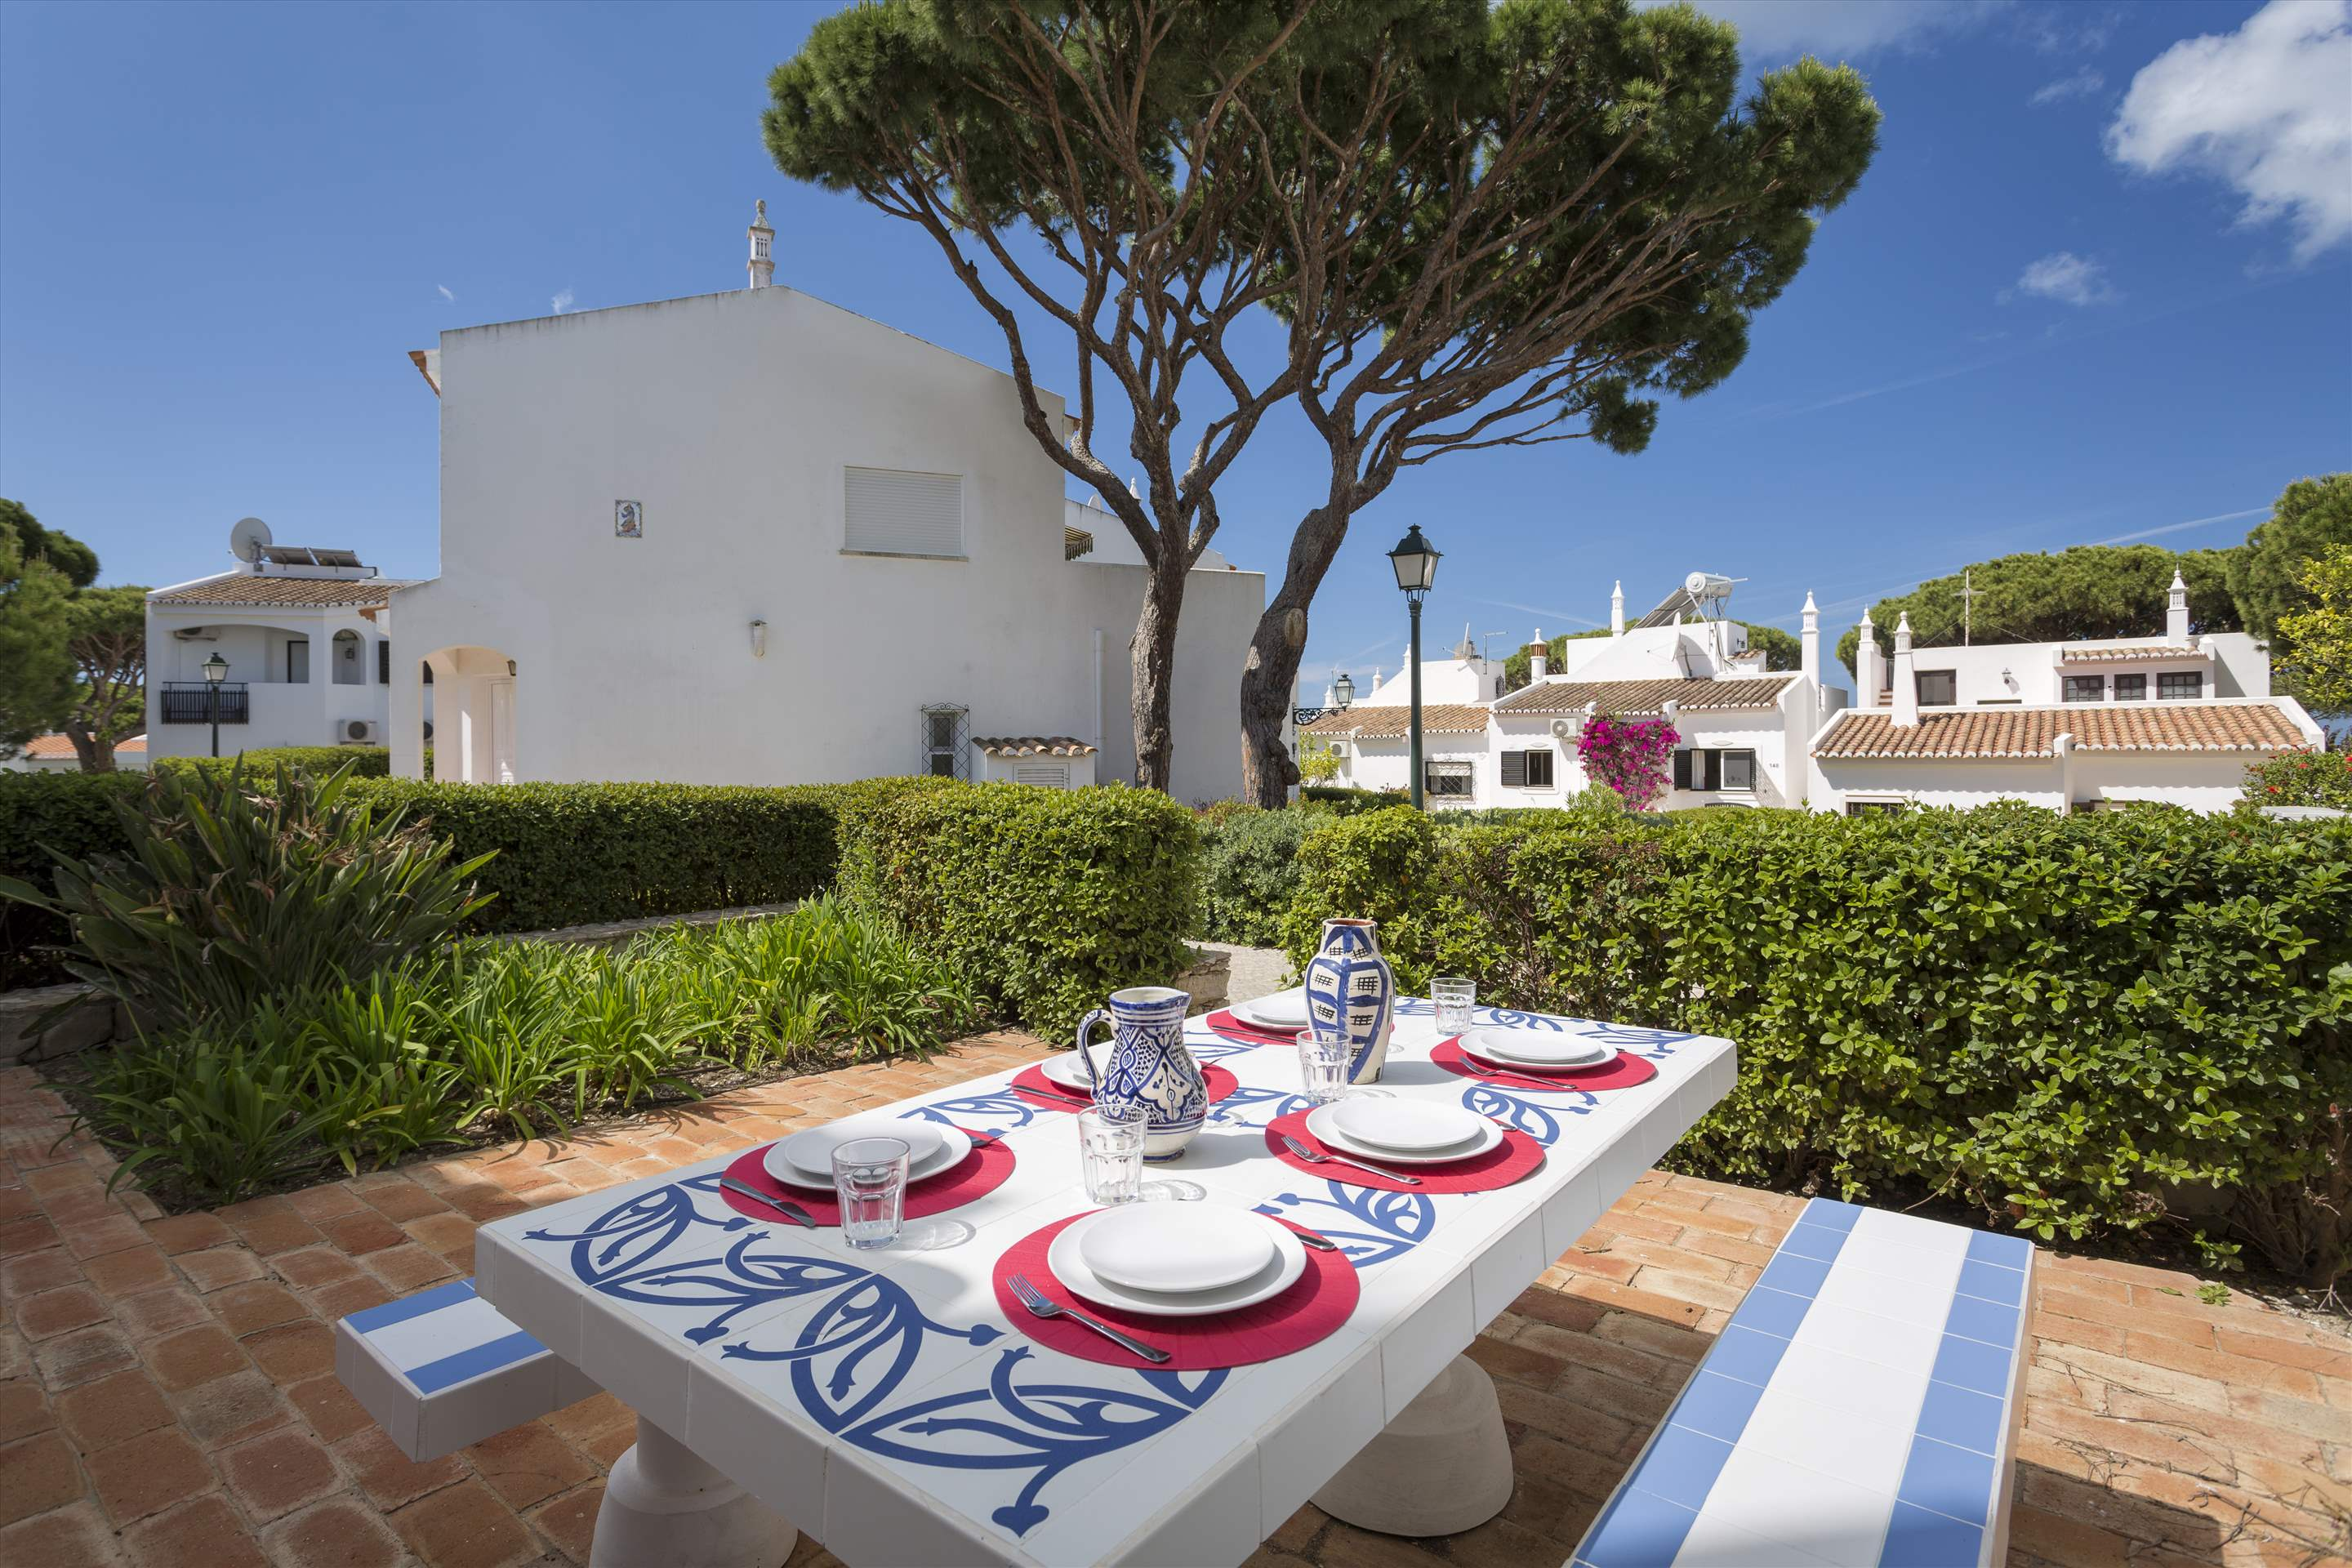 Townhouse Megan, 3 bedroom villa in Vale do Lobo, Algarve Photo #2